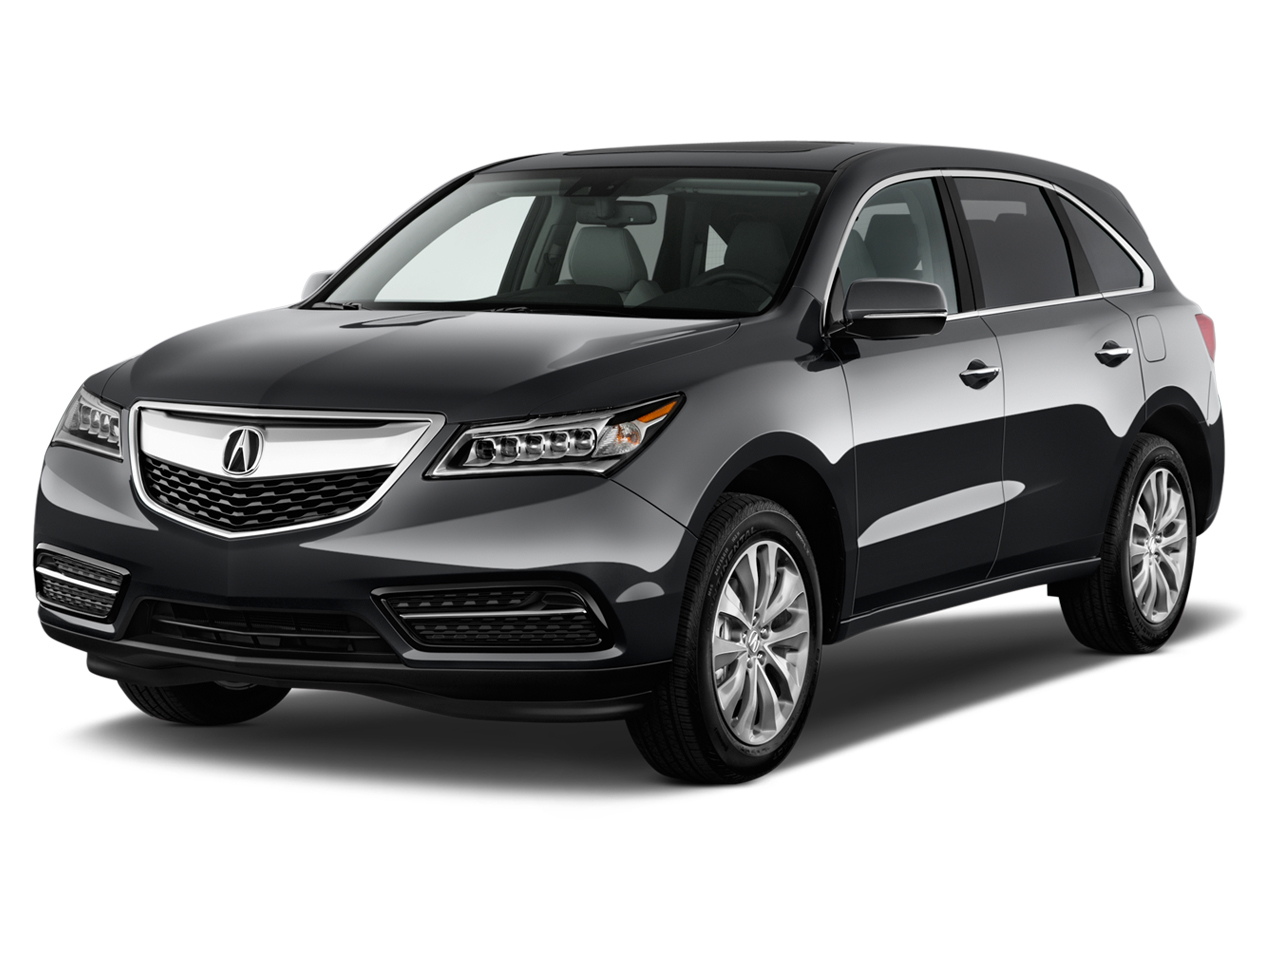 2016 Acura MDX Review, Ratings, Specs, Prices, and Photos - The Car Connection